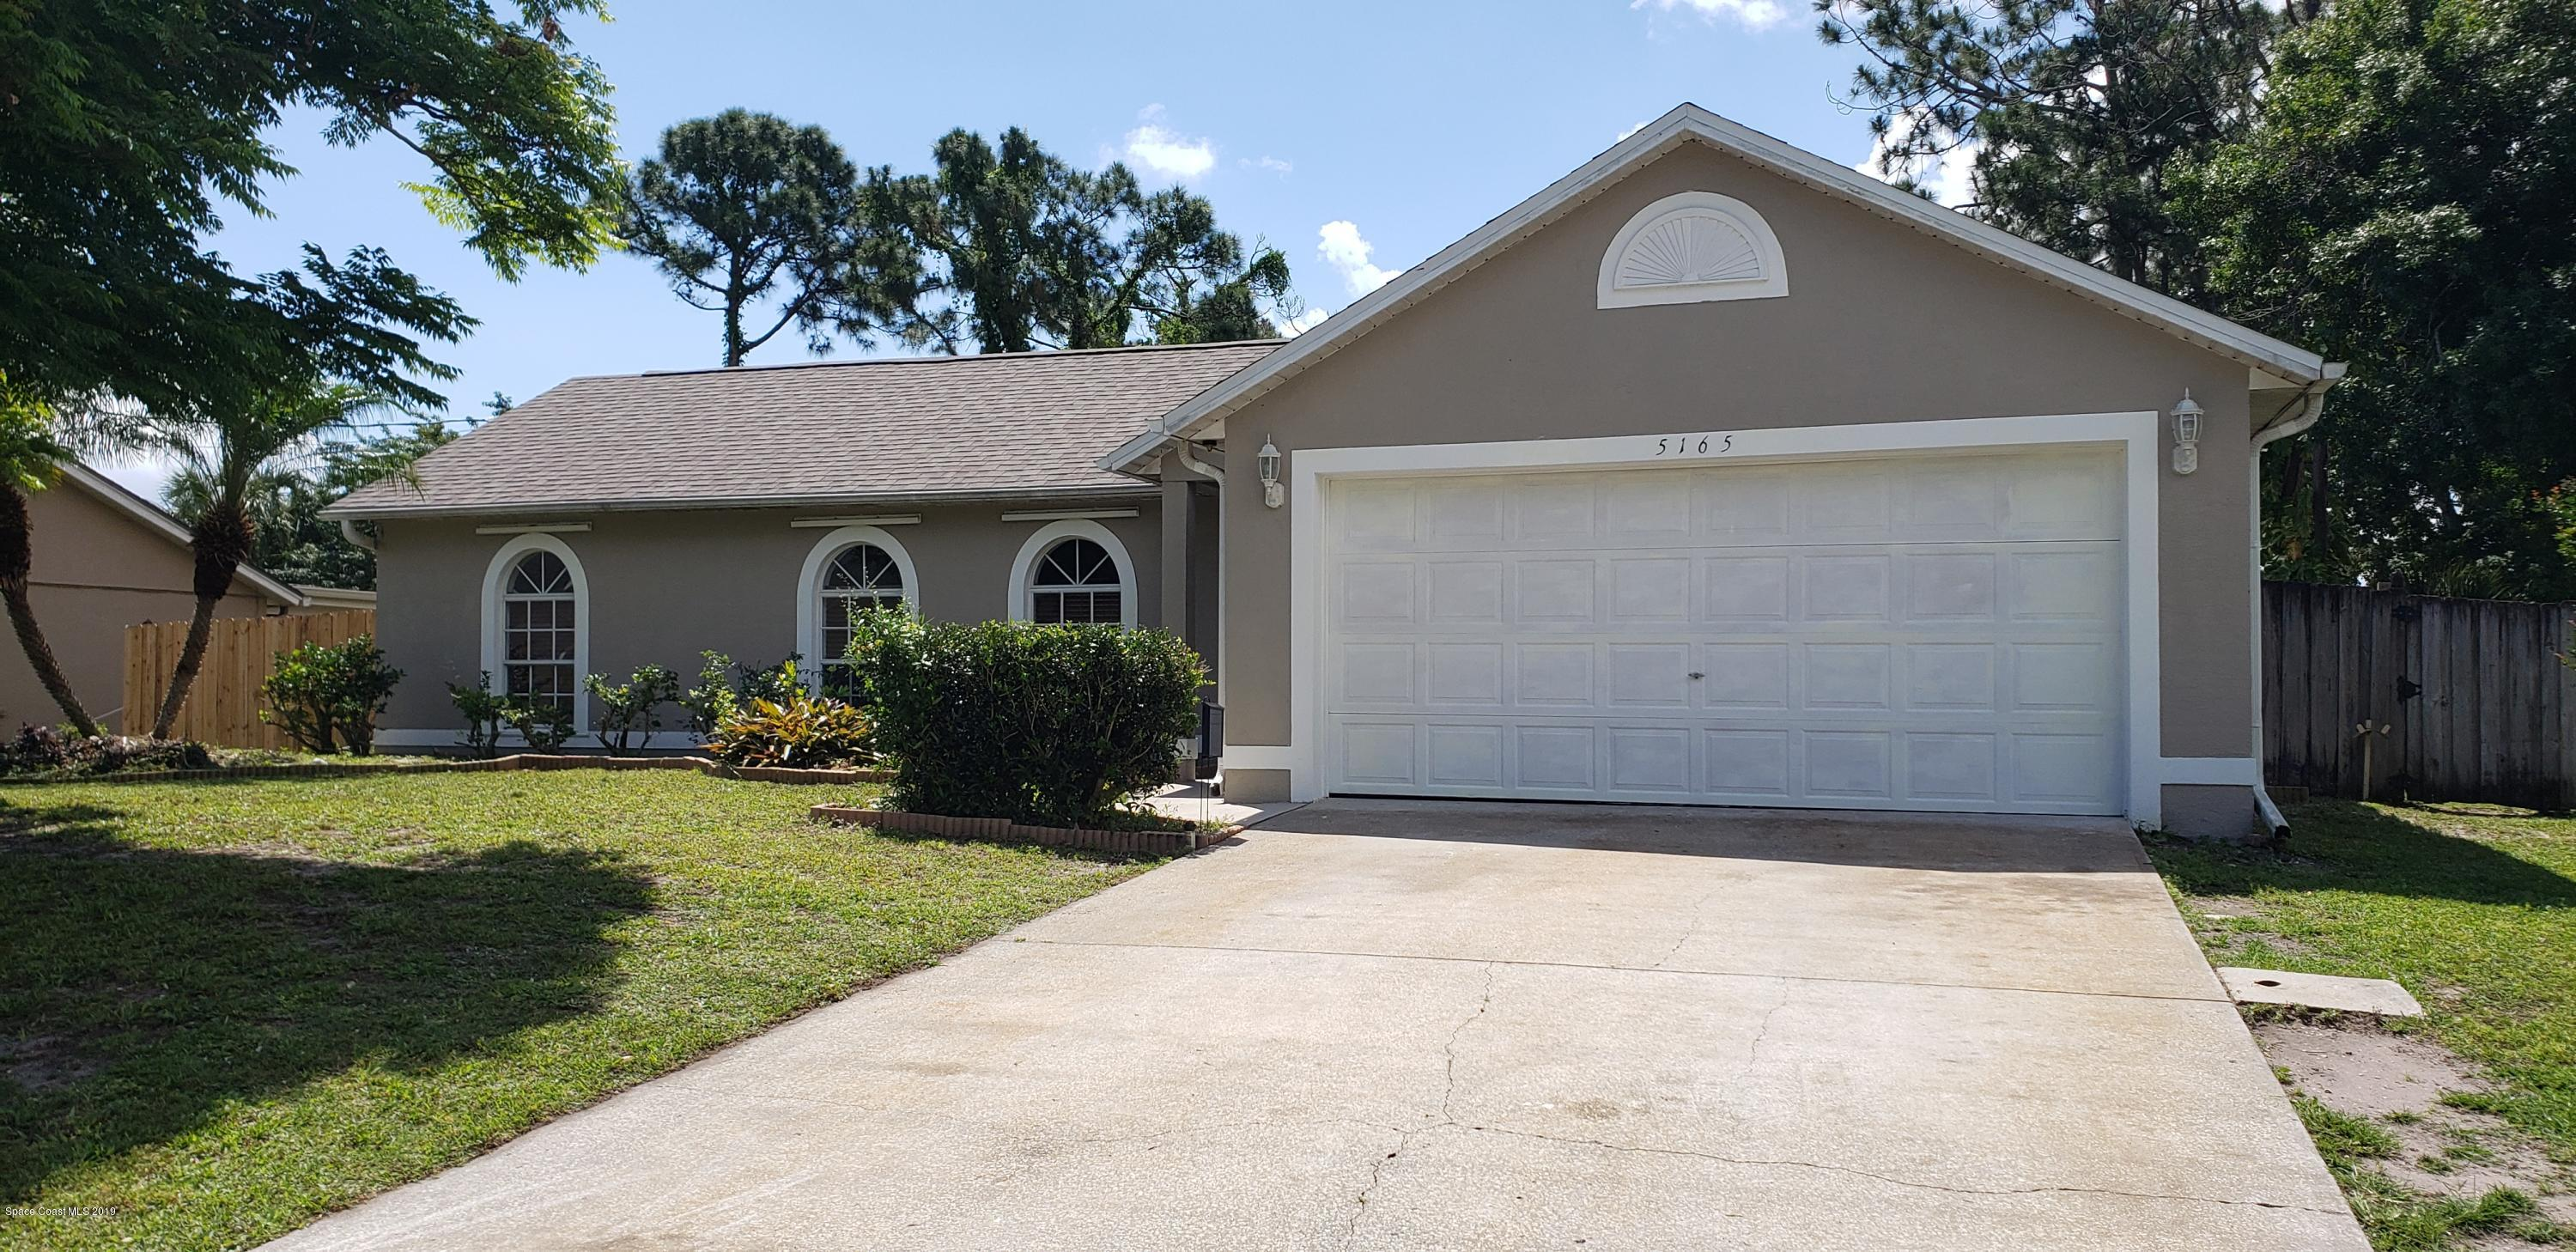 Details for 5165 Patricia Street, Cocoa, FL 32927